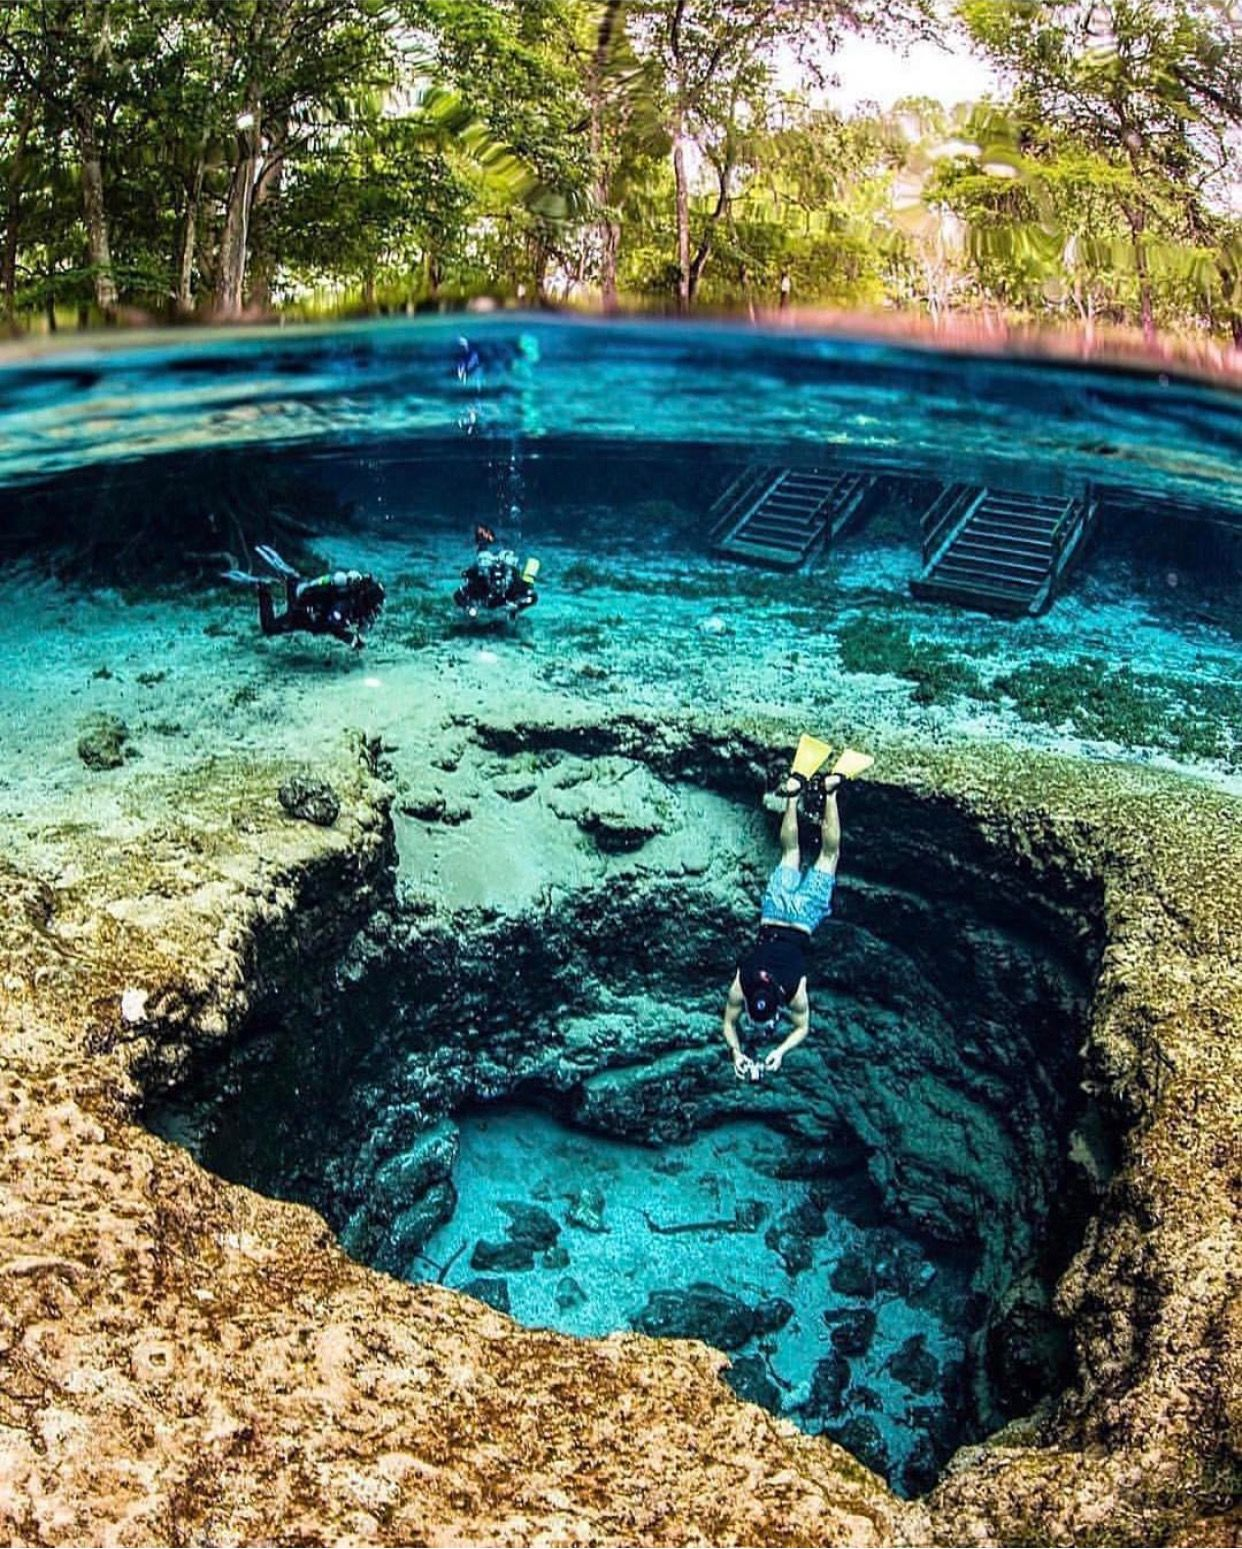 Ginnie Springs, Florida | Beautiful places to go in 2019 ... on cozumel map, silver river state park map, manatee springs map, st. andrews state park map, caladesi island state park map, ichetucknee state park map, vortex springs map, peacock springs map, weeki wachee springs map, john pennekamp coral reef state park map, oscar scherer state park map, ponce de leon springs map, gilchrist county map, poe springs map, telford map, suwannee river state park map, alexander springs map, high springs fl map, long key state park map, the devil's highway map,